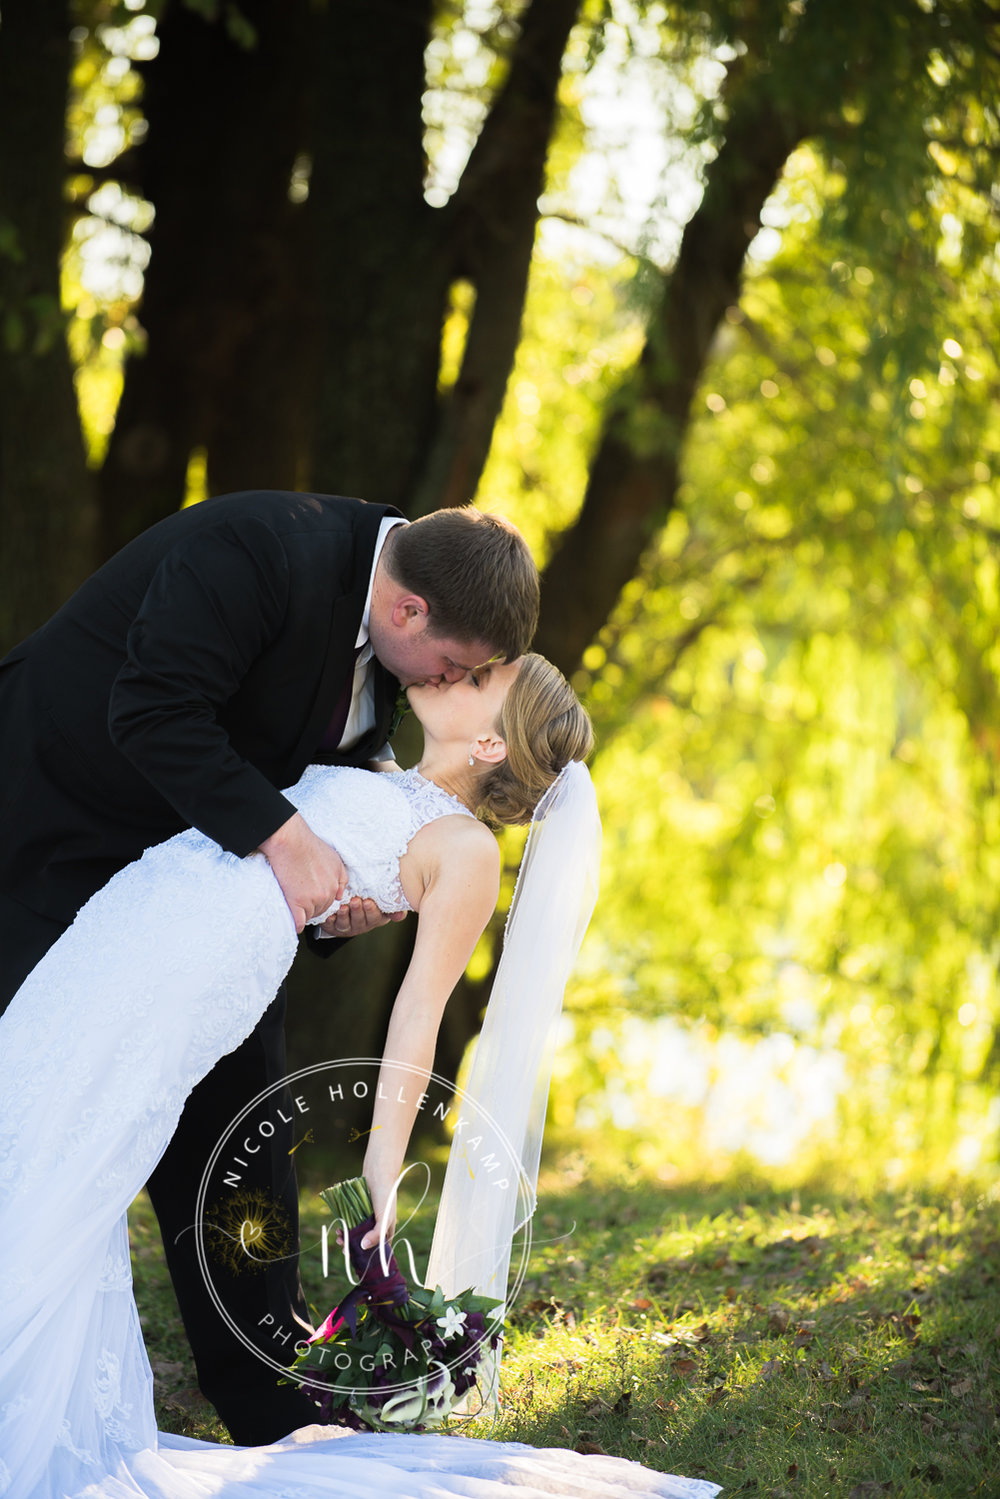 Wedding, Engagement and Portrait Photography